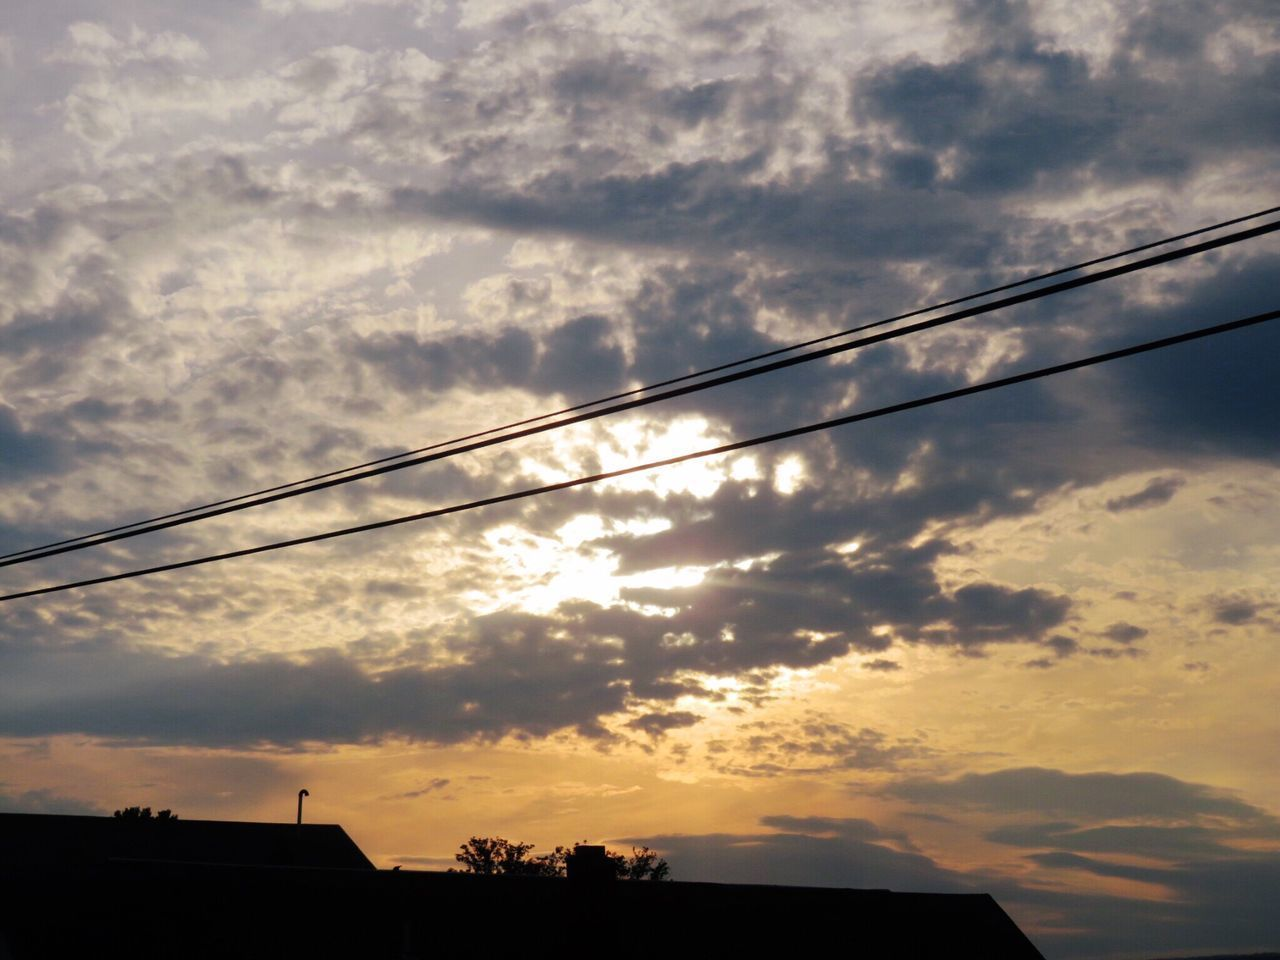 sunset, silhouette, cloud - sky, sky, no people, nature, beauty in nature, scenics, outdoors, low angle view, cable, built structure, building exterior, architecture, telephone line, day